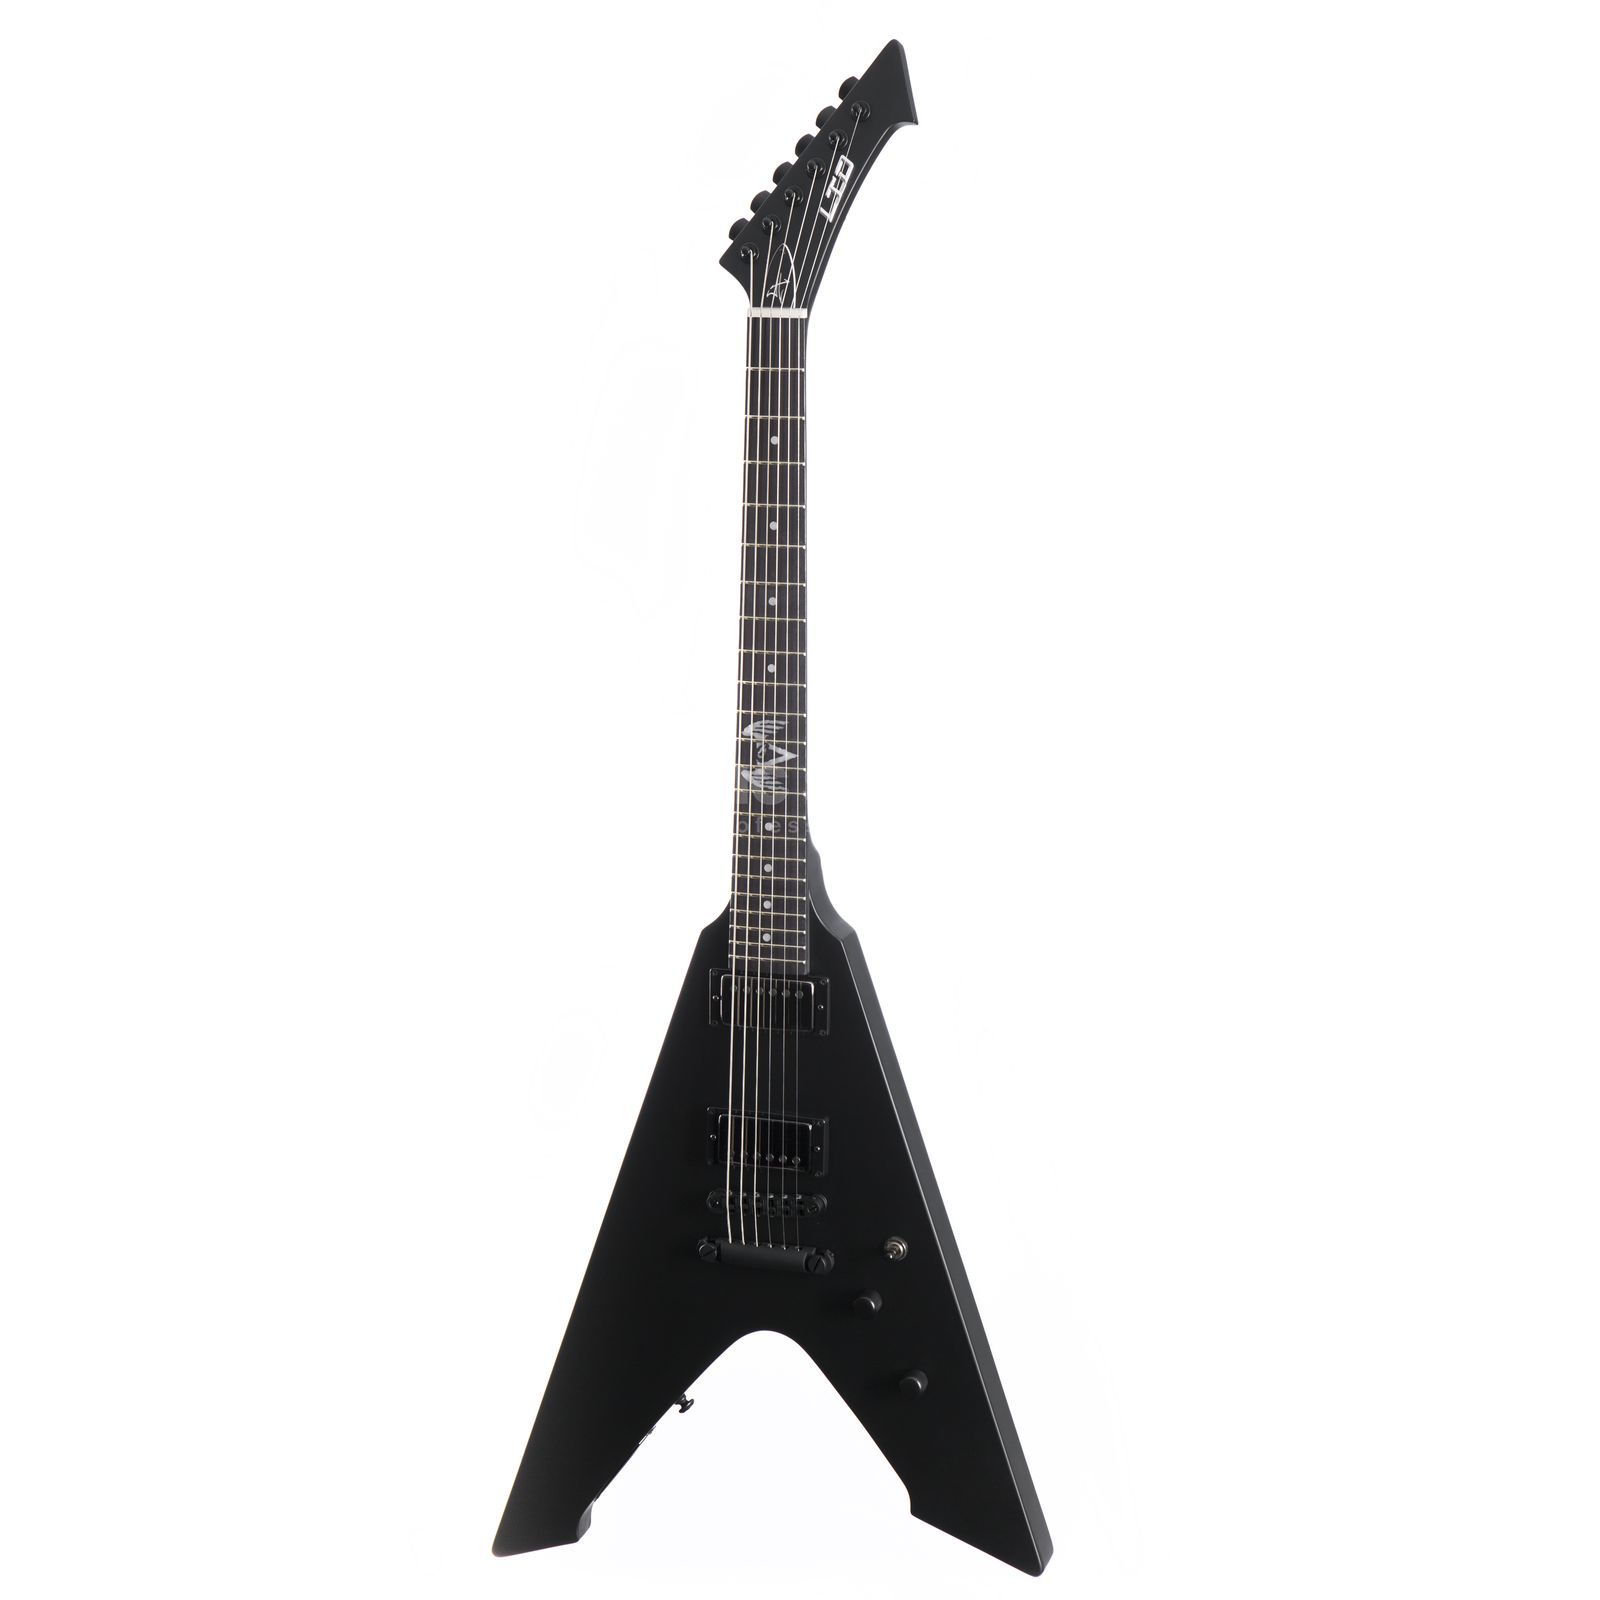 ESP LTD Vulture Black Satin James Hetfield Signature Zdjęcie produktu